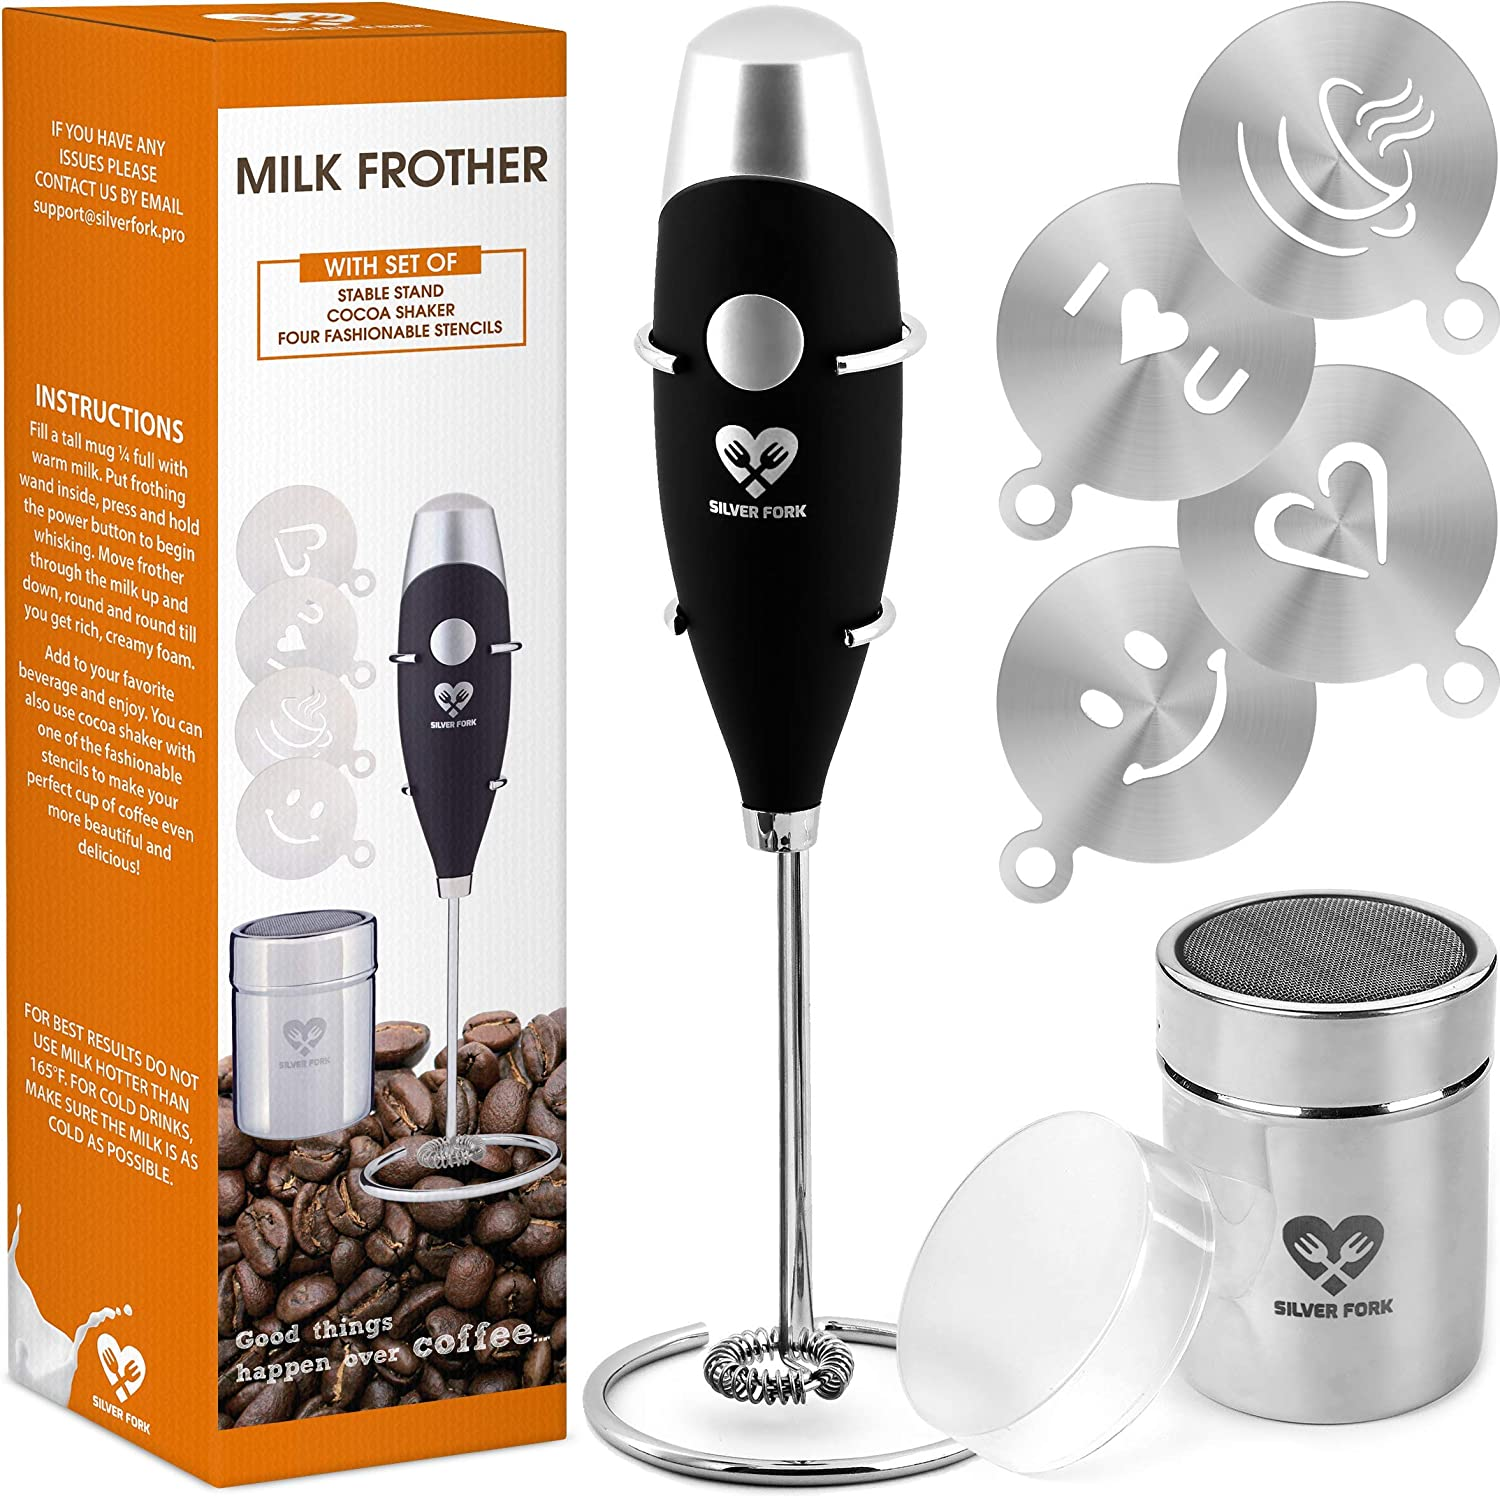 High Powered Milk Frother COMPLETE SET